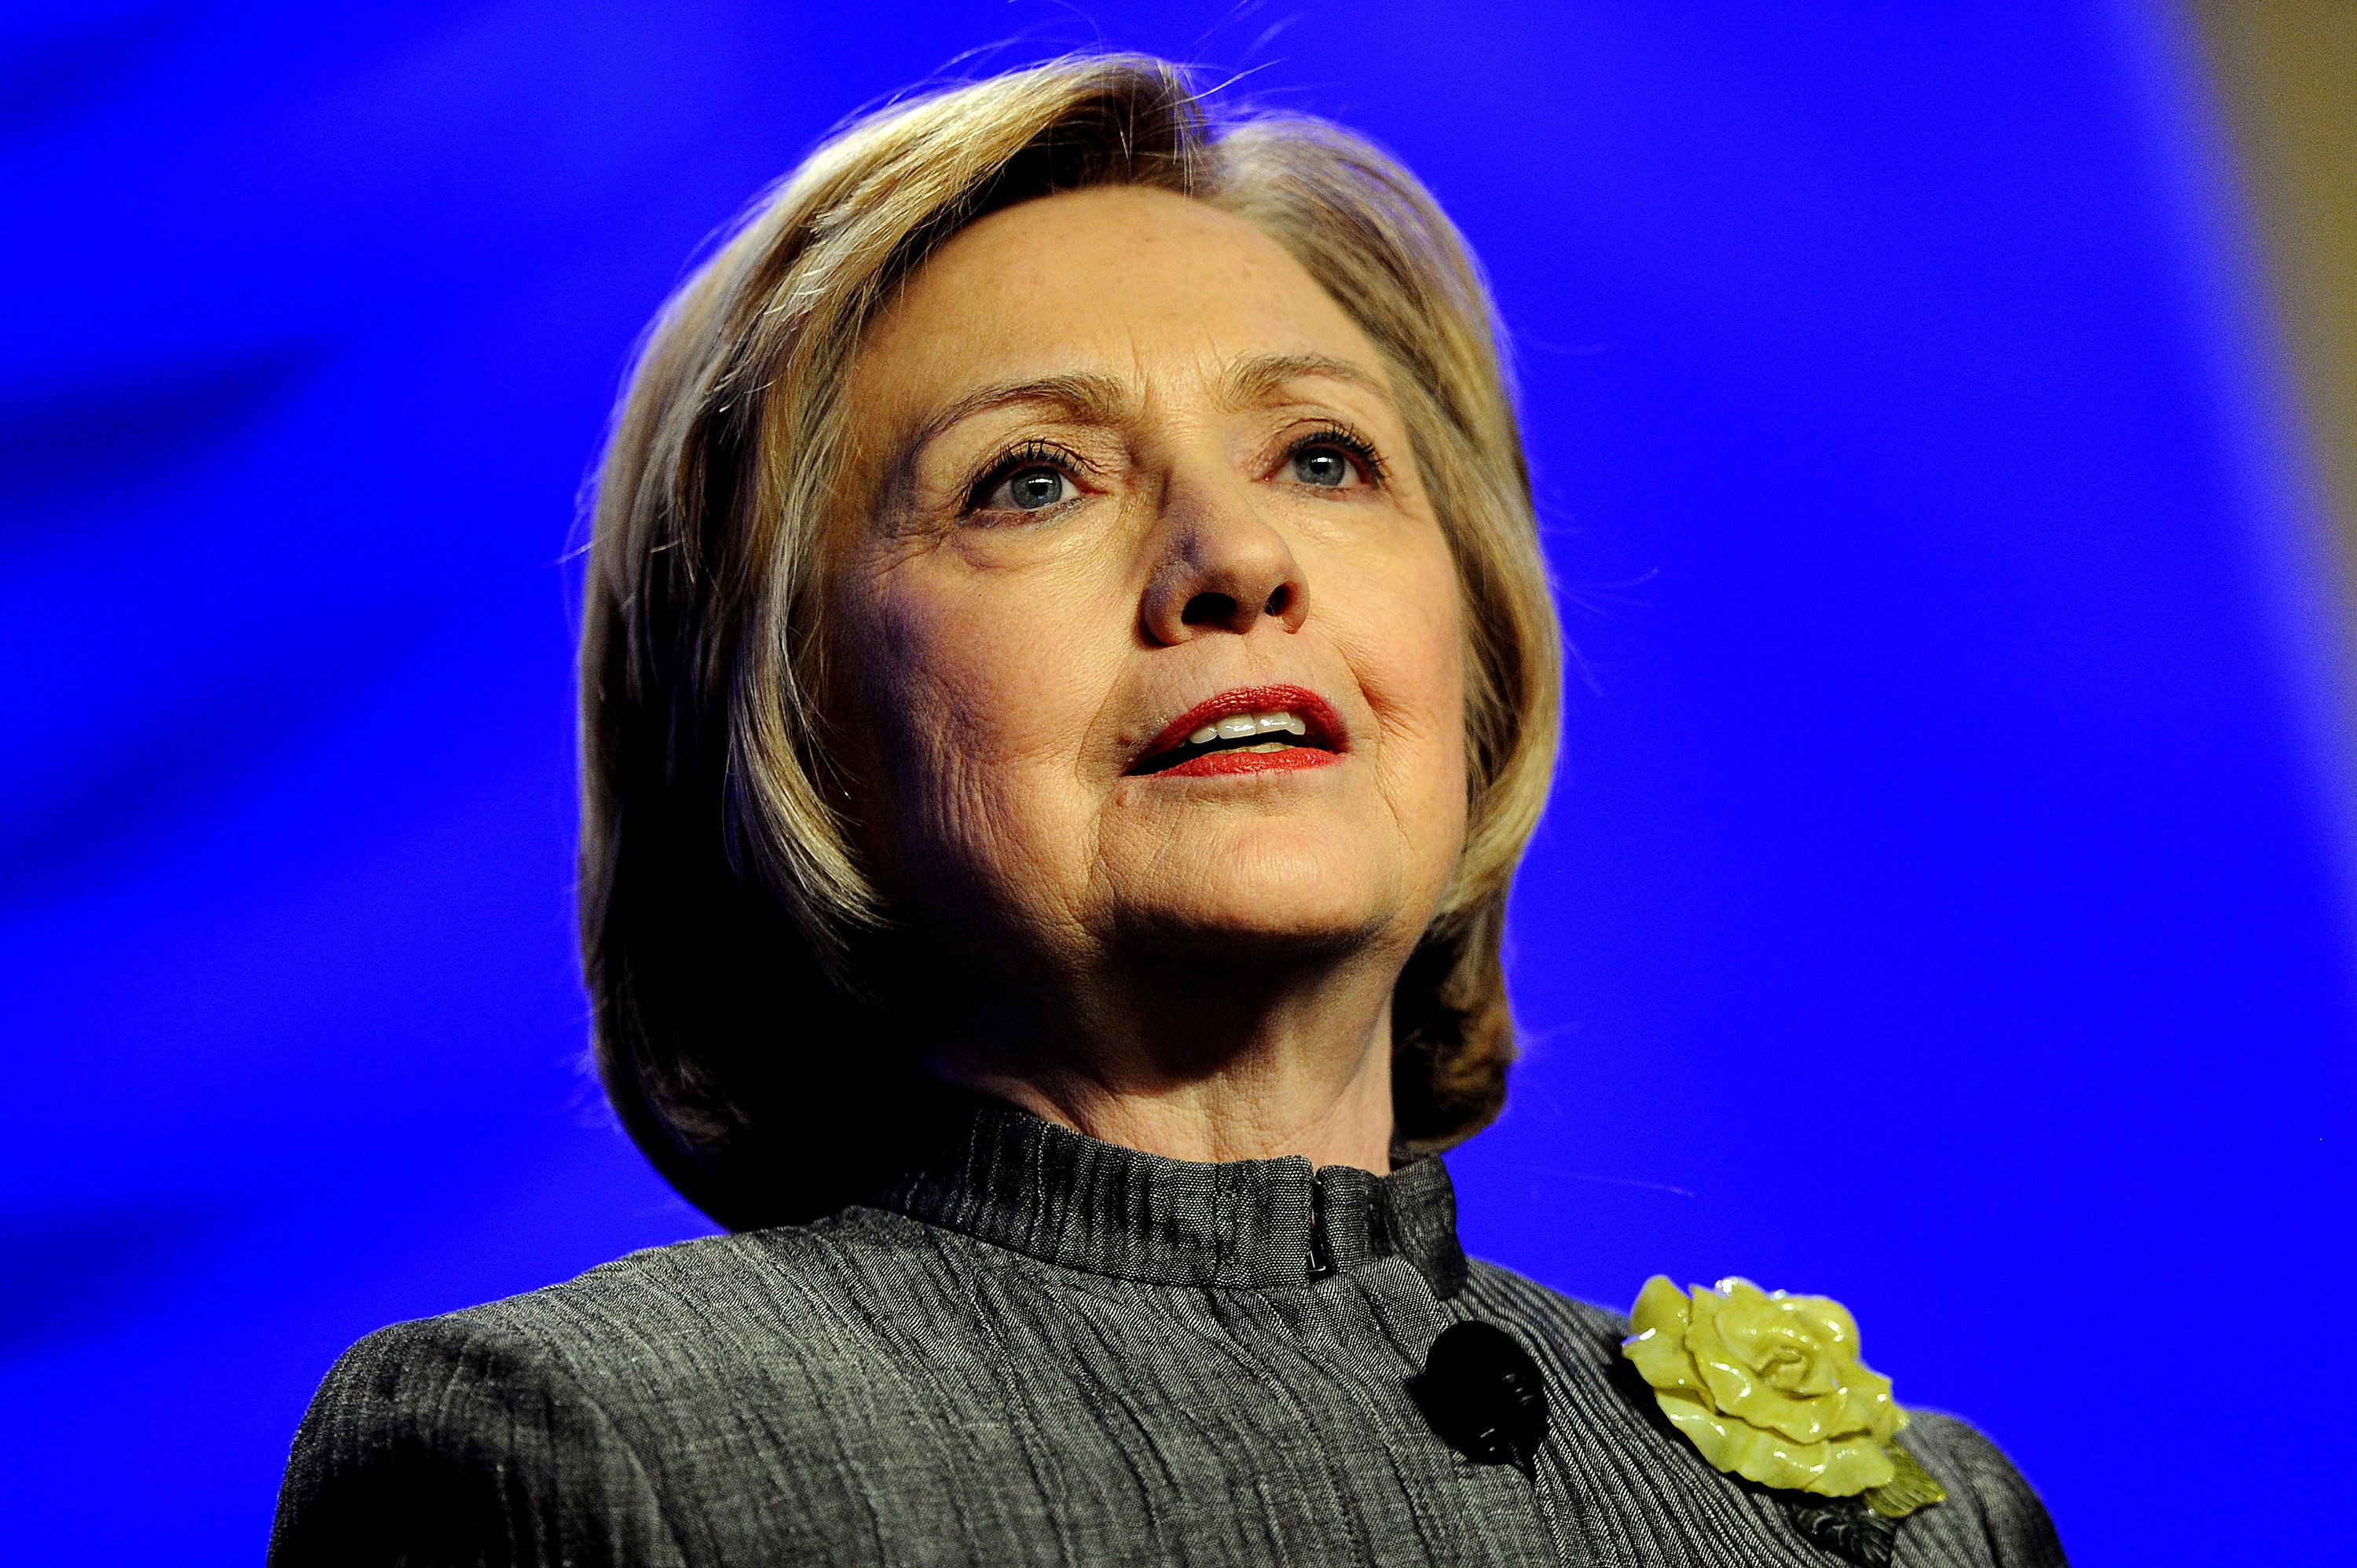 Former Secretary of State Hillary Rodham Clinton delivers remarks during the National Council for Behavioral Health's Annual Conference at the Gaylord National Resort & Convention Center in National Harbor, Md. on May 6, 2014.